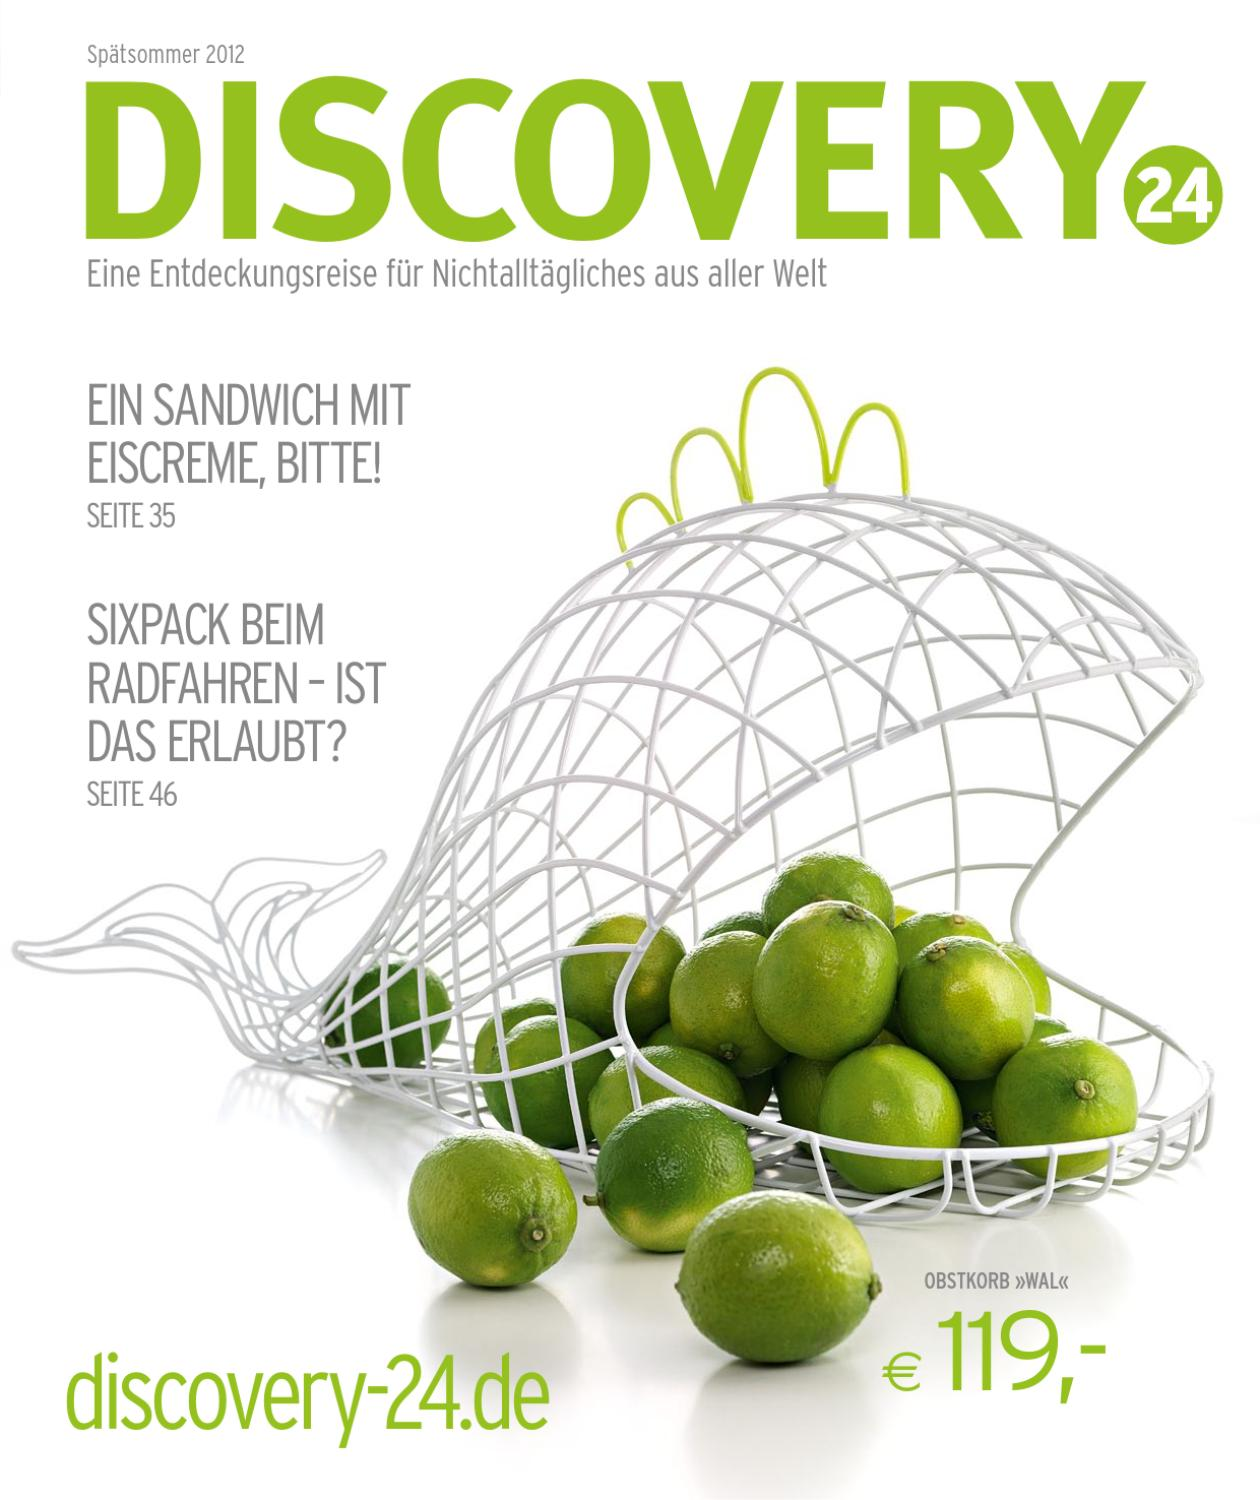 Katorg World Discovery Osen Spaetsommer Of Shopping By 2012 lFJcT1K